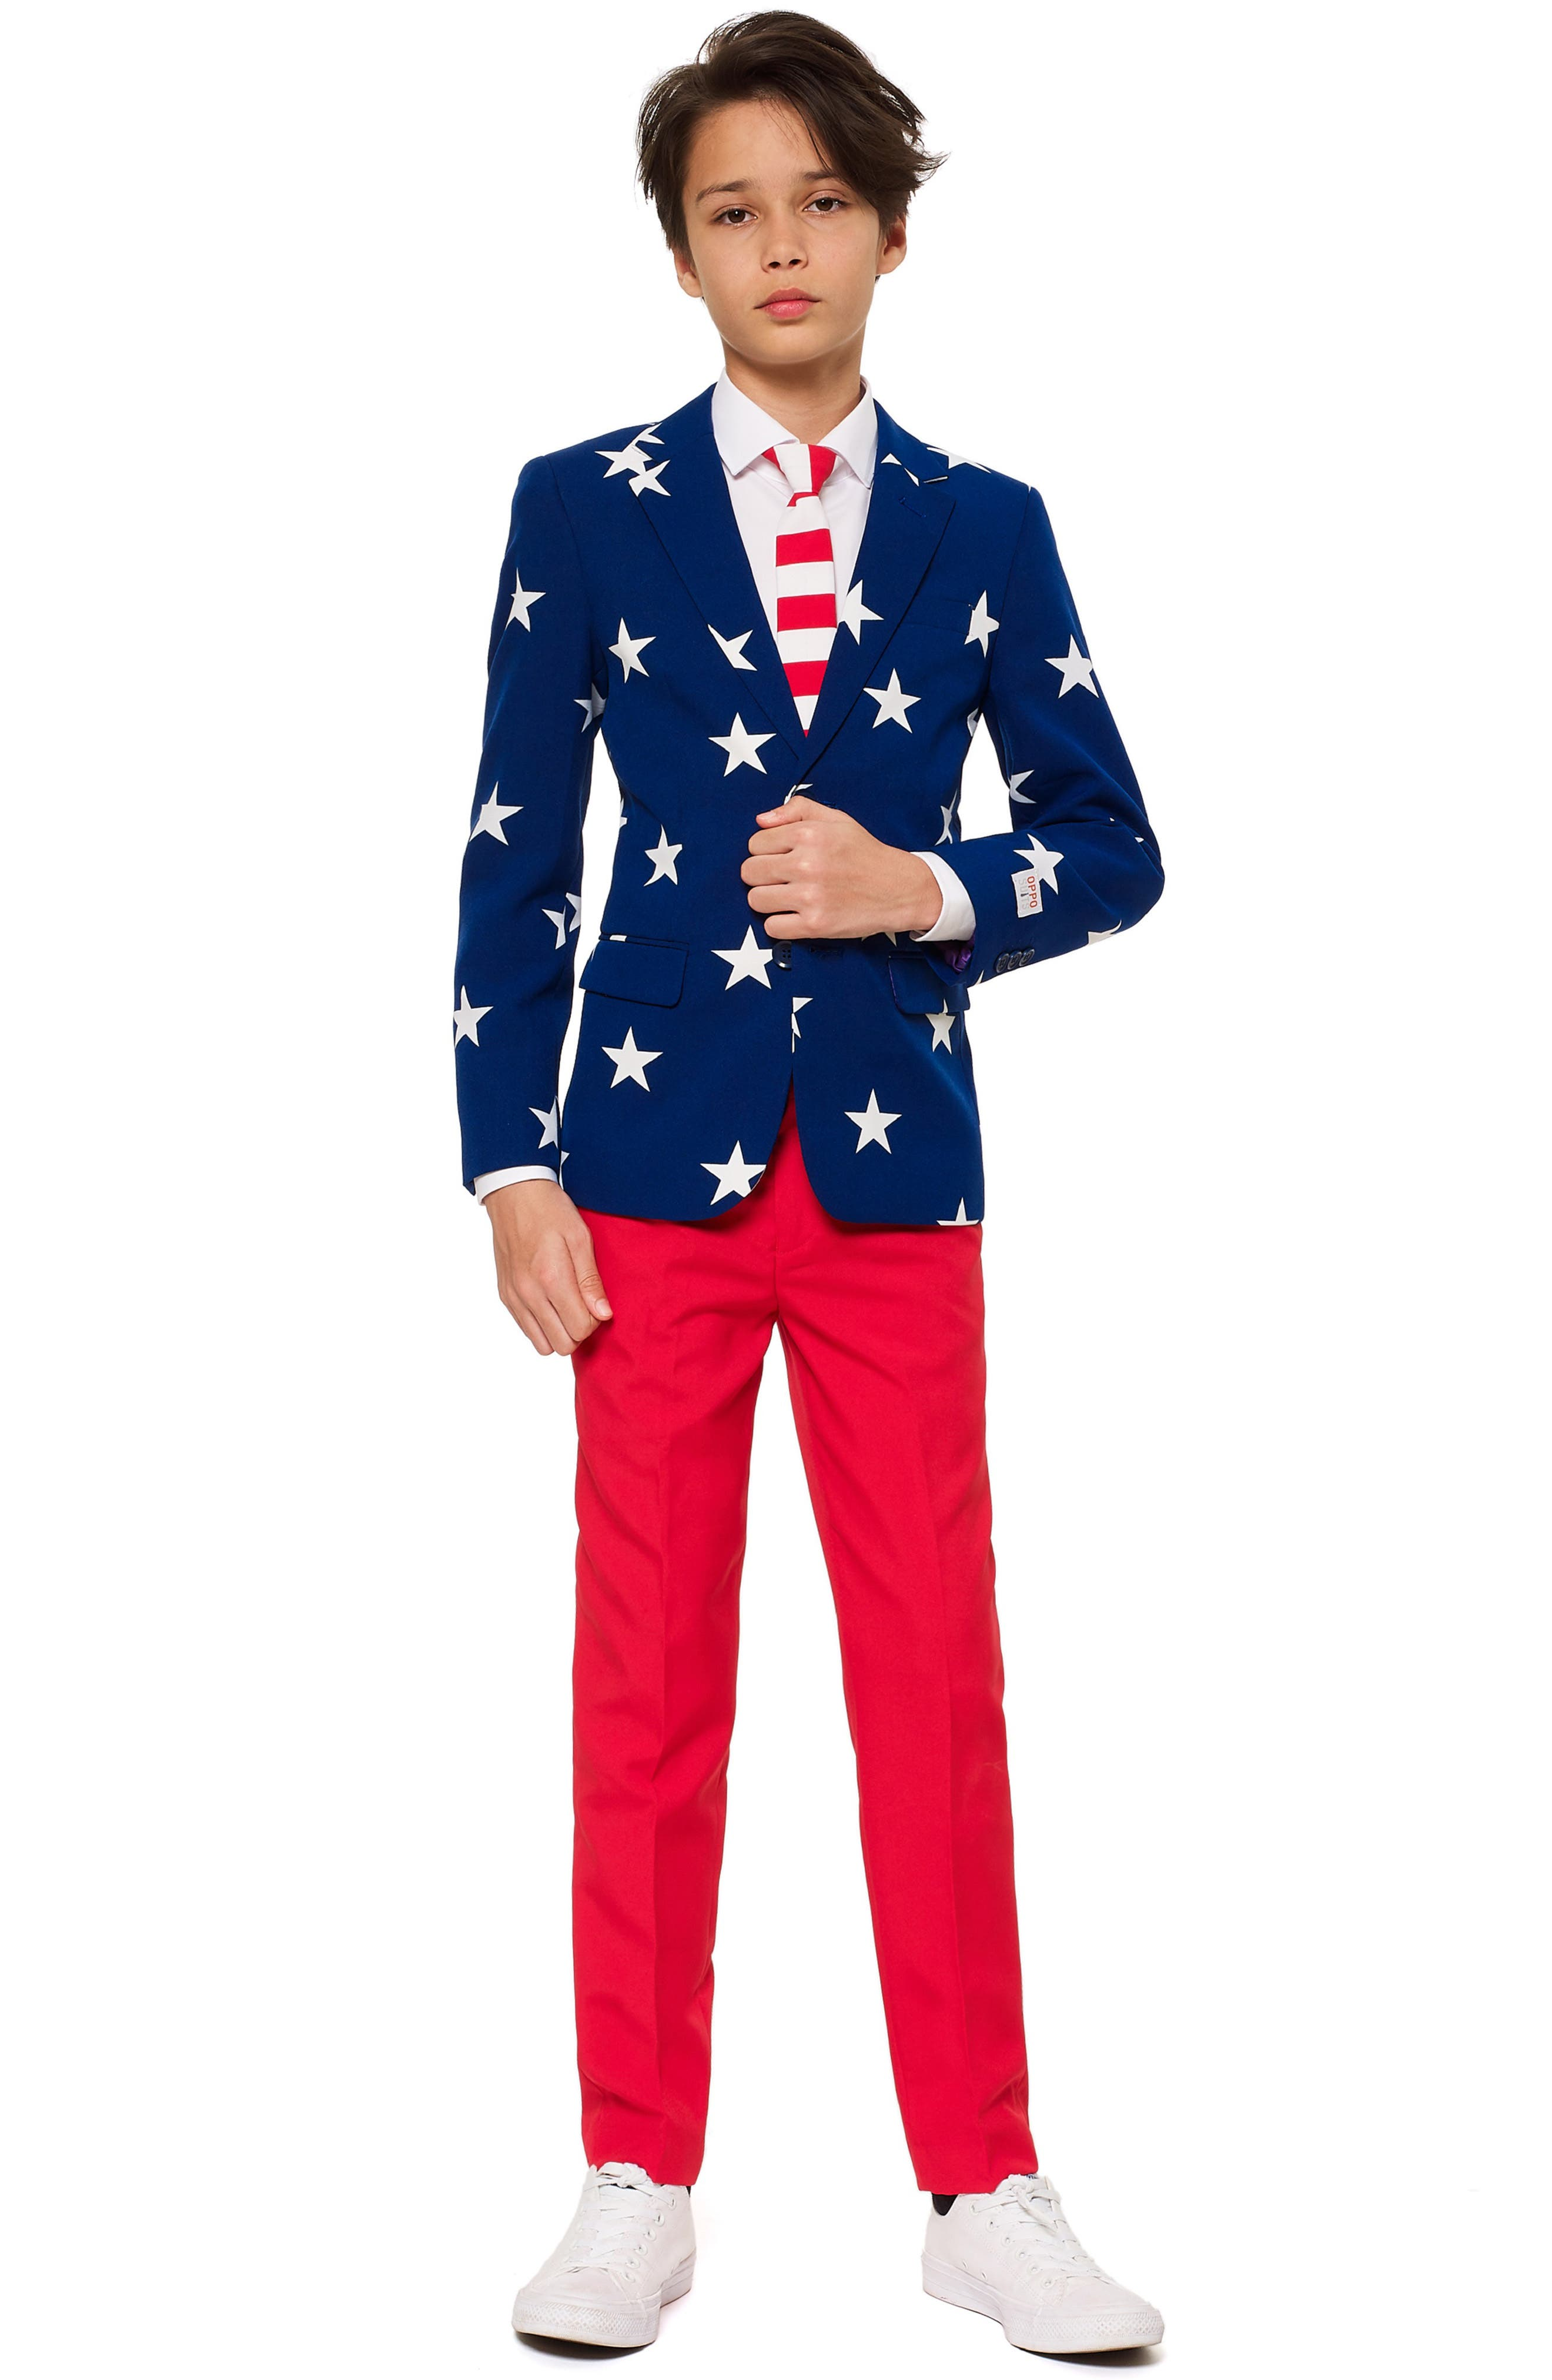 Stars & Stripes Two-Piece Suit with Tie,                             Main thumbnail 1, color,                             BLUE/ WHITE